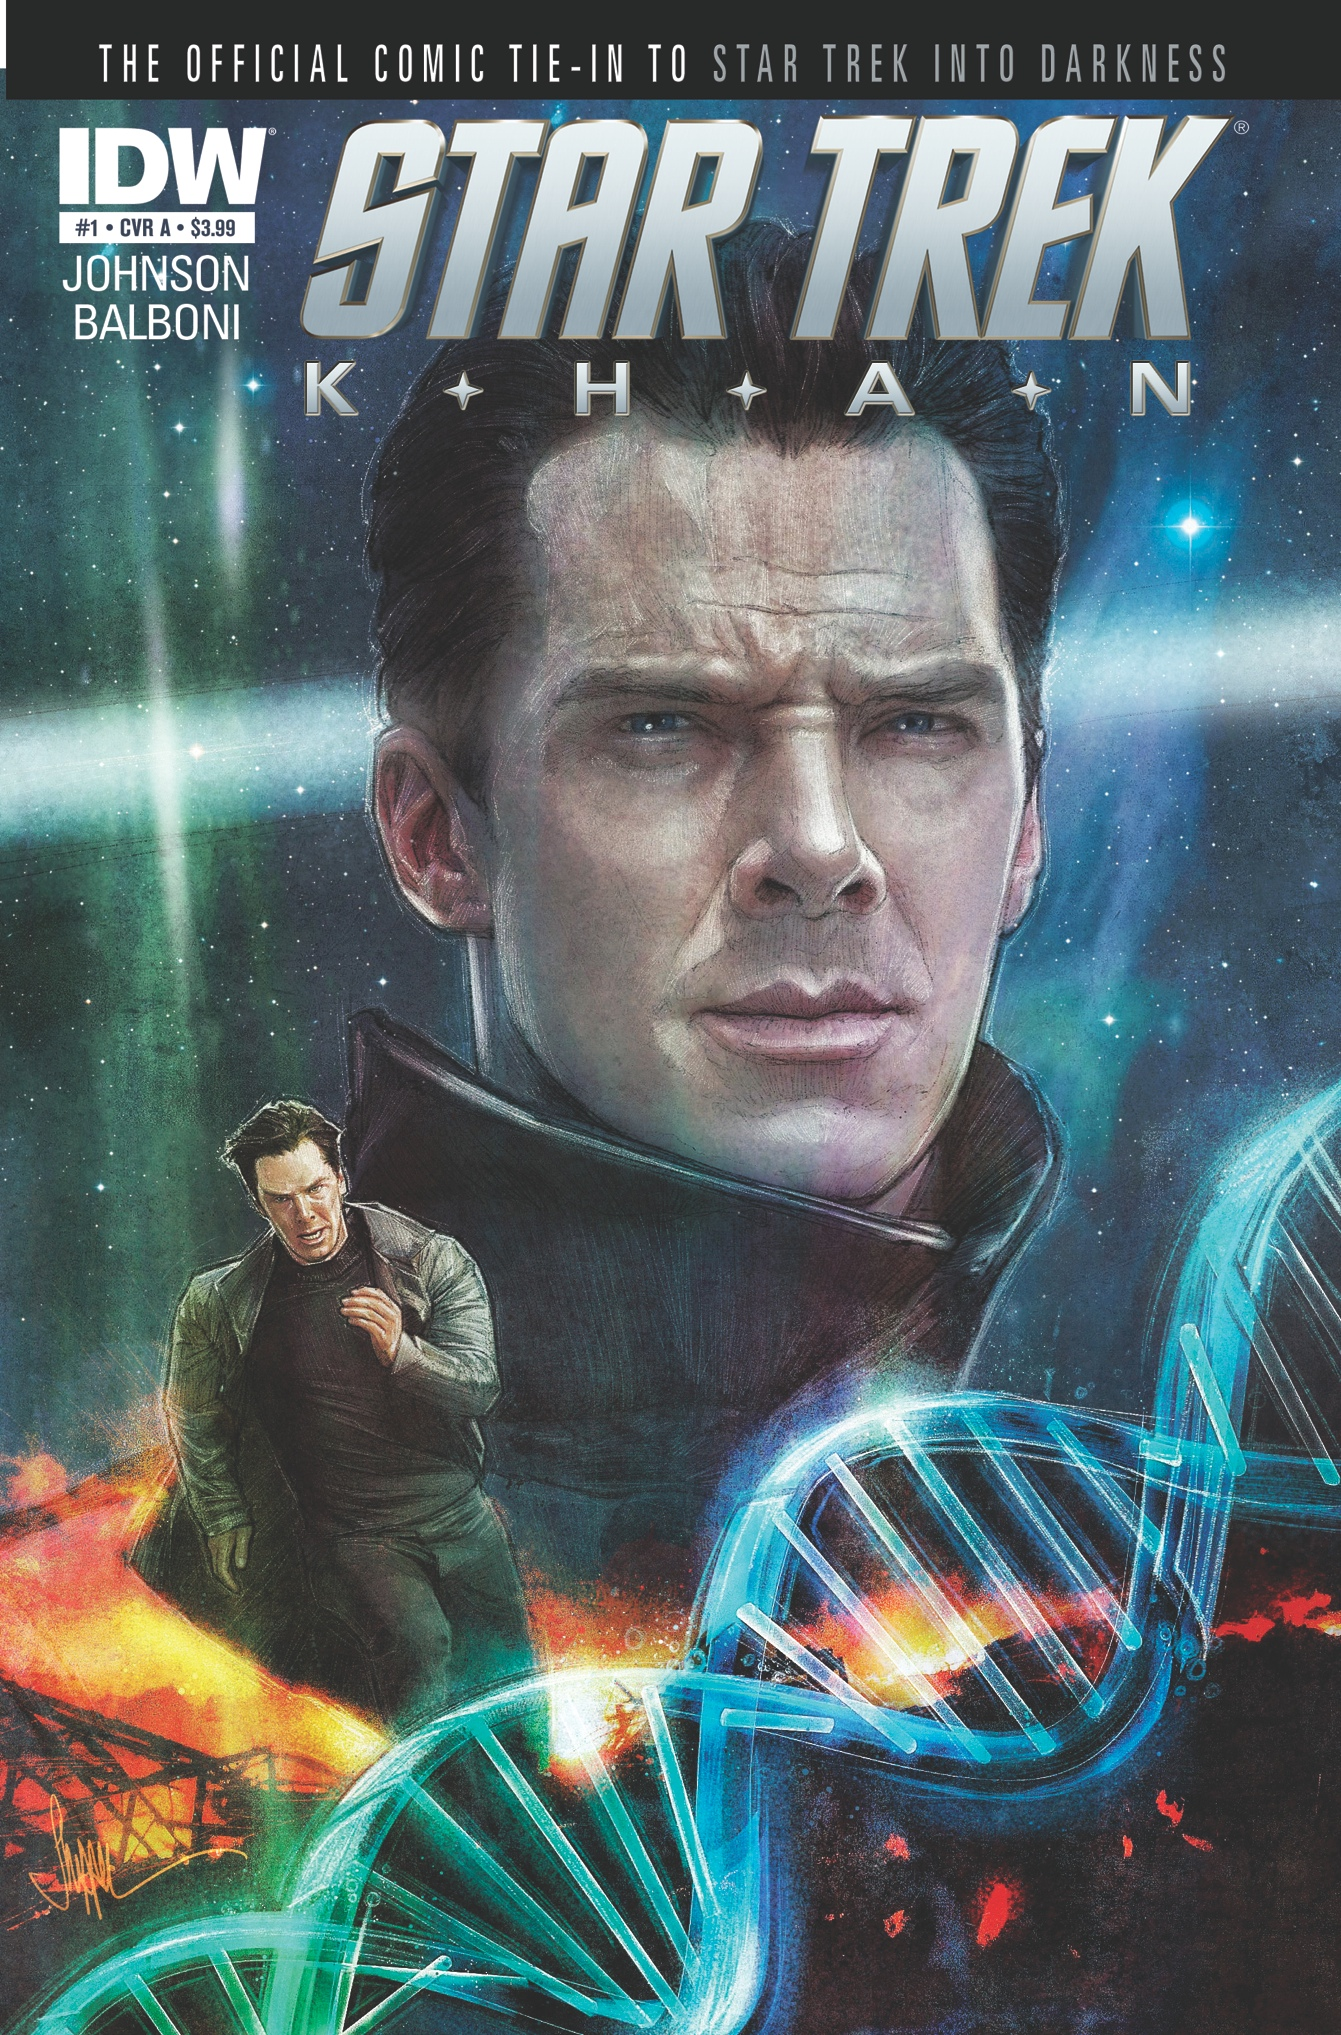 STARTREK2 Khan01 CovA Learn Khan's Origin in The Upcoming Star Trek: Khan Miniseries From IDW